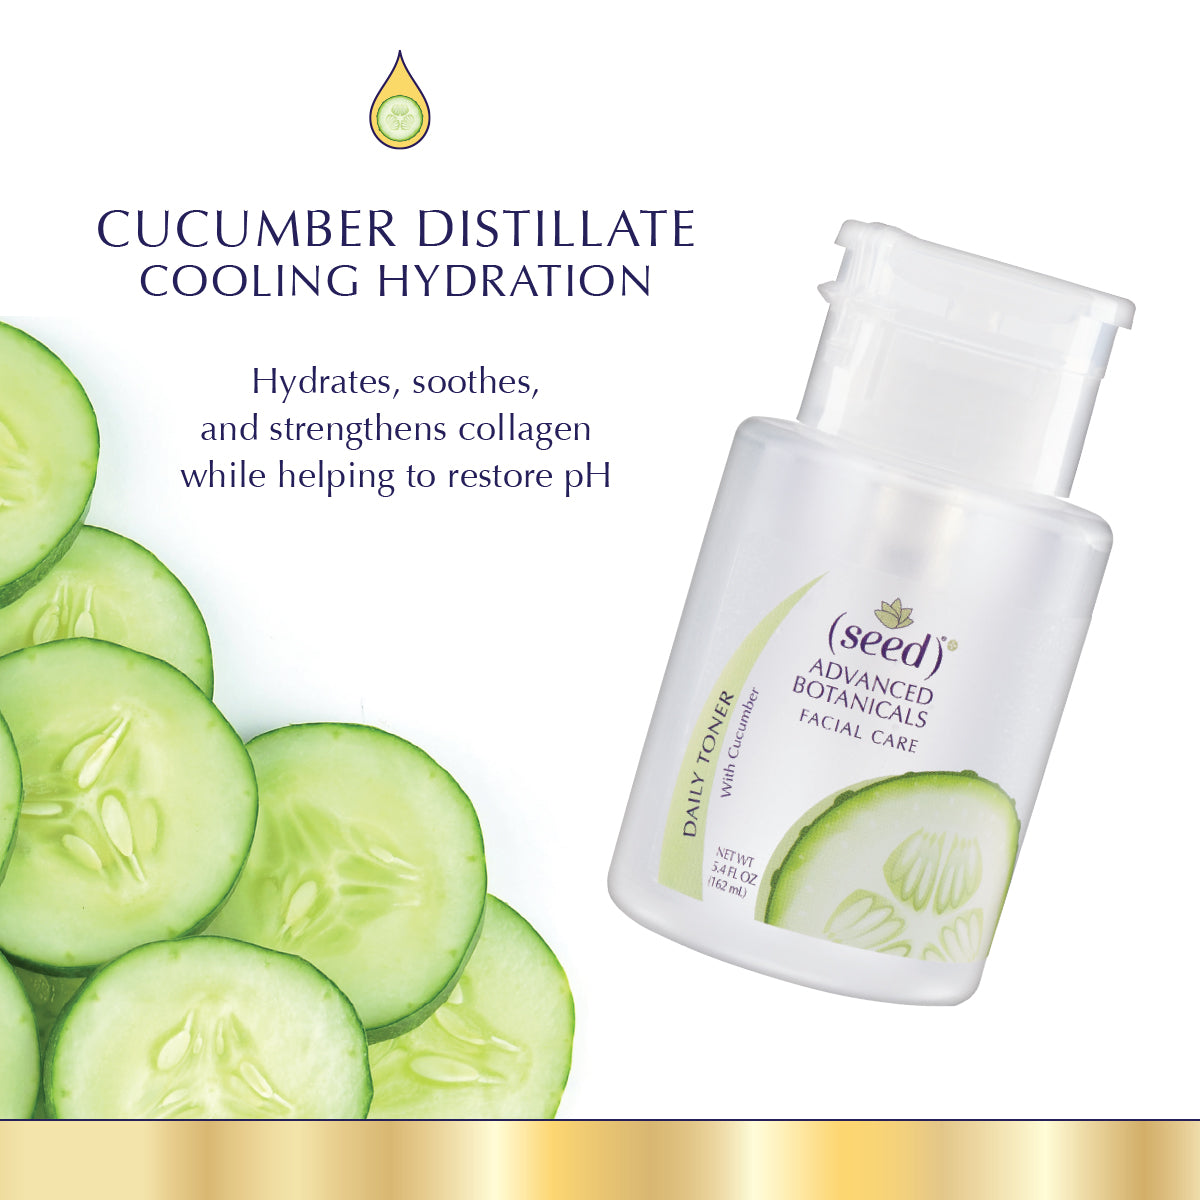 Seed Advanced Botanicals Cucumber Face Toner features Pure Cucumber Distillate